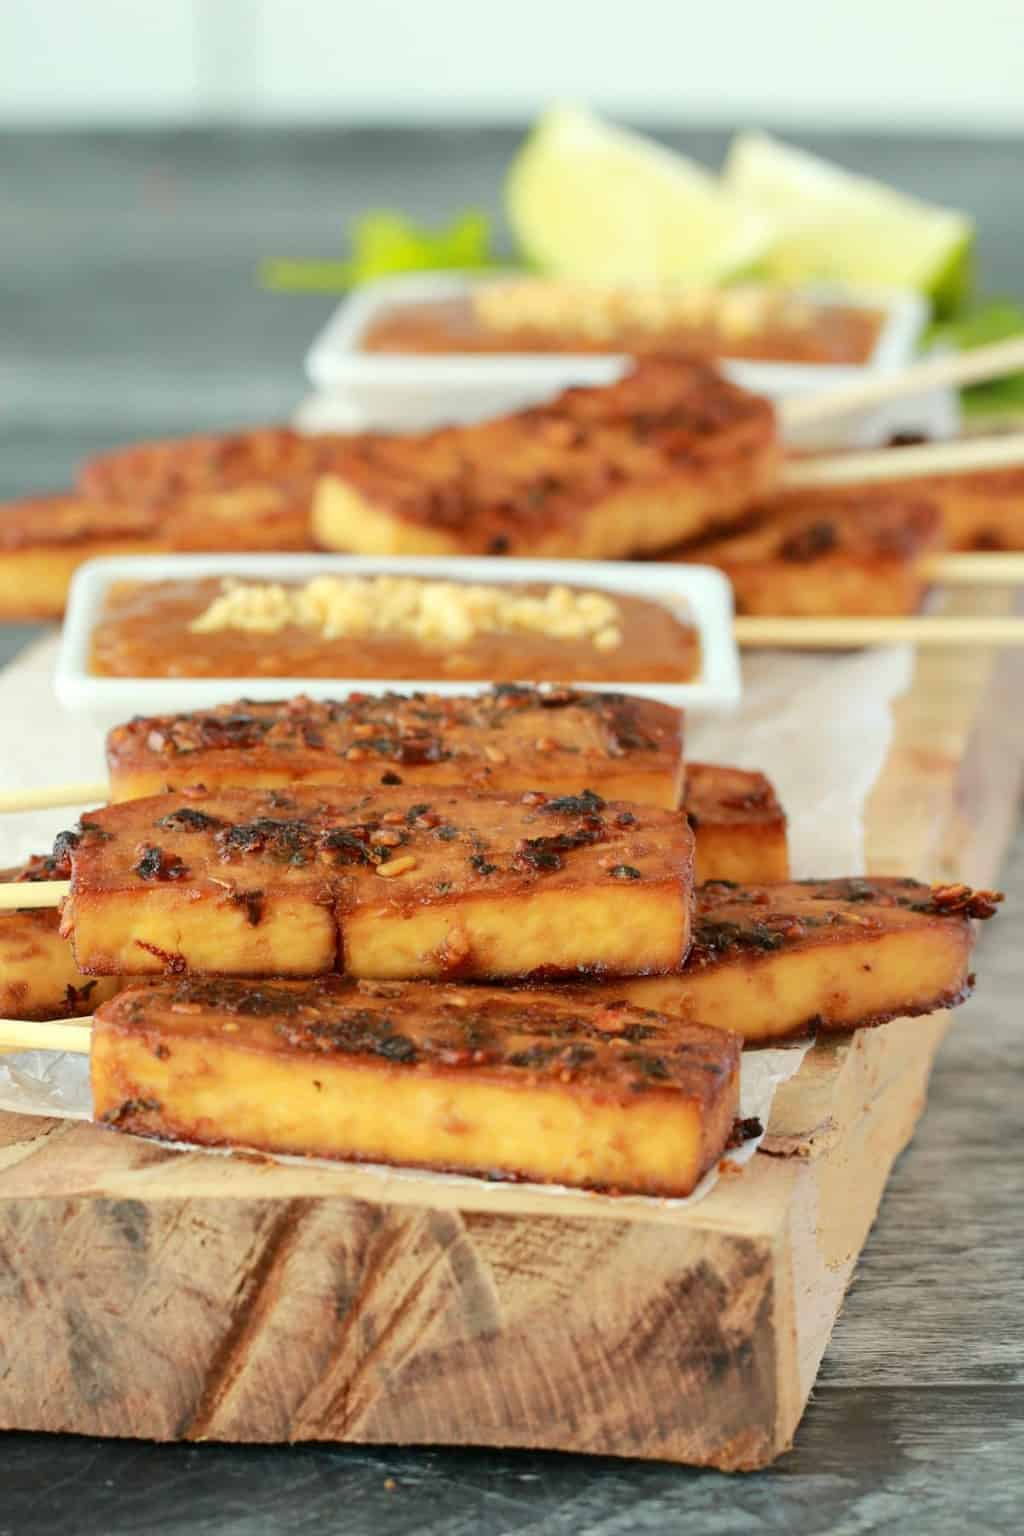 Baked tofu satay on a wooden board with peanut sauce in a white dish.